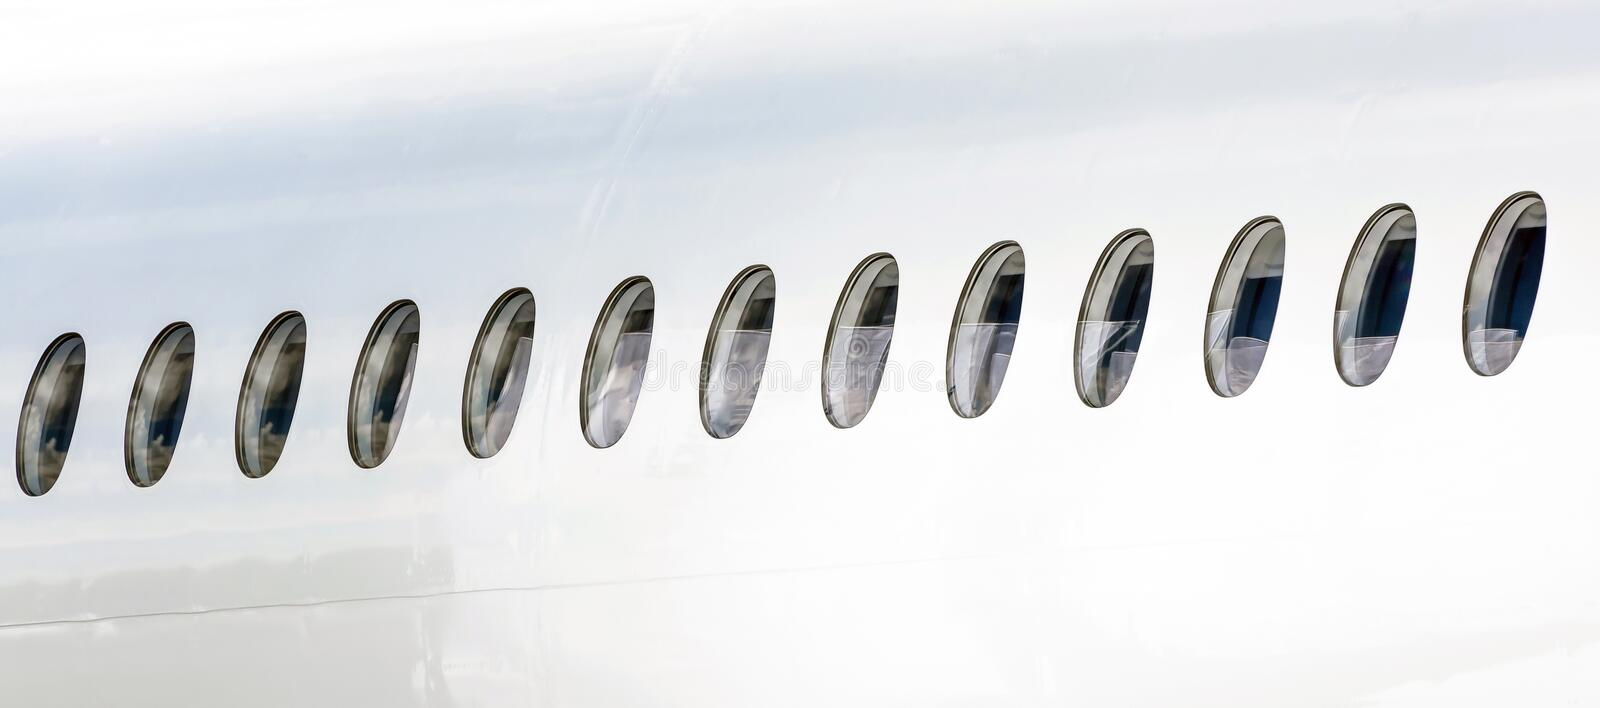 Many portholes in a row on the fuselage of a white airplane. Many portholes in a row on the fuselage of a white airplane stock image